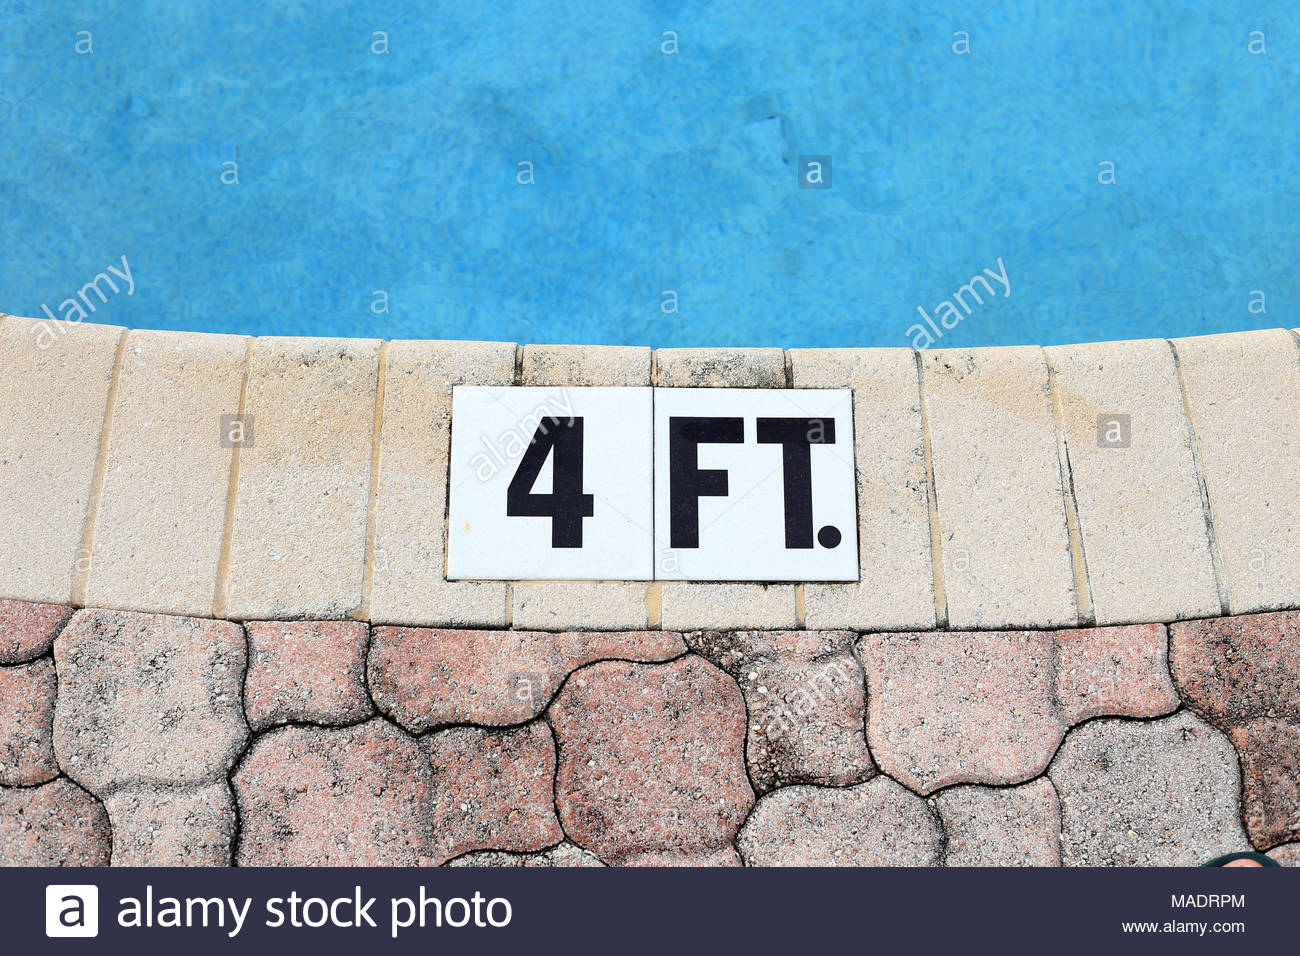 The edge of a shallow swimming pool. Its depth (four feet ...